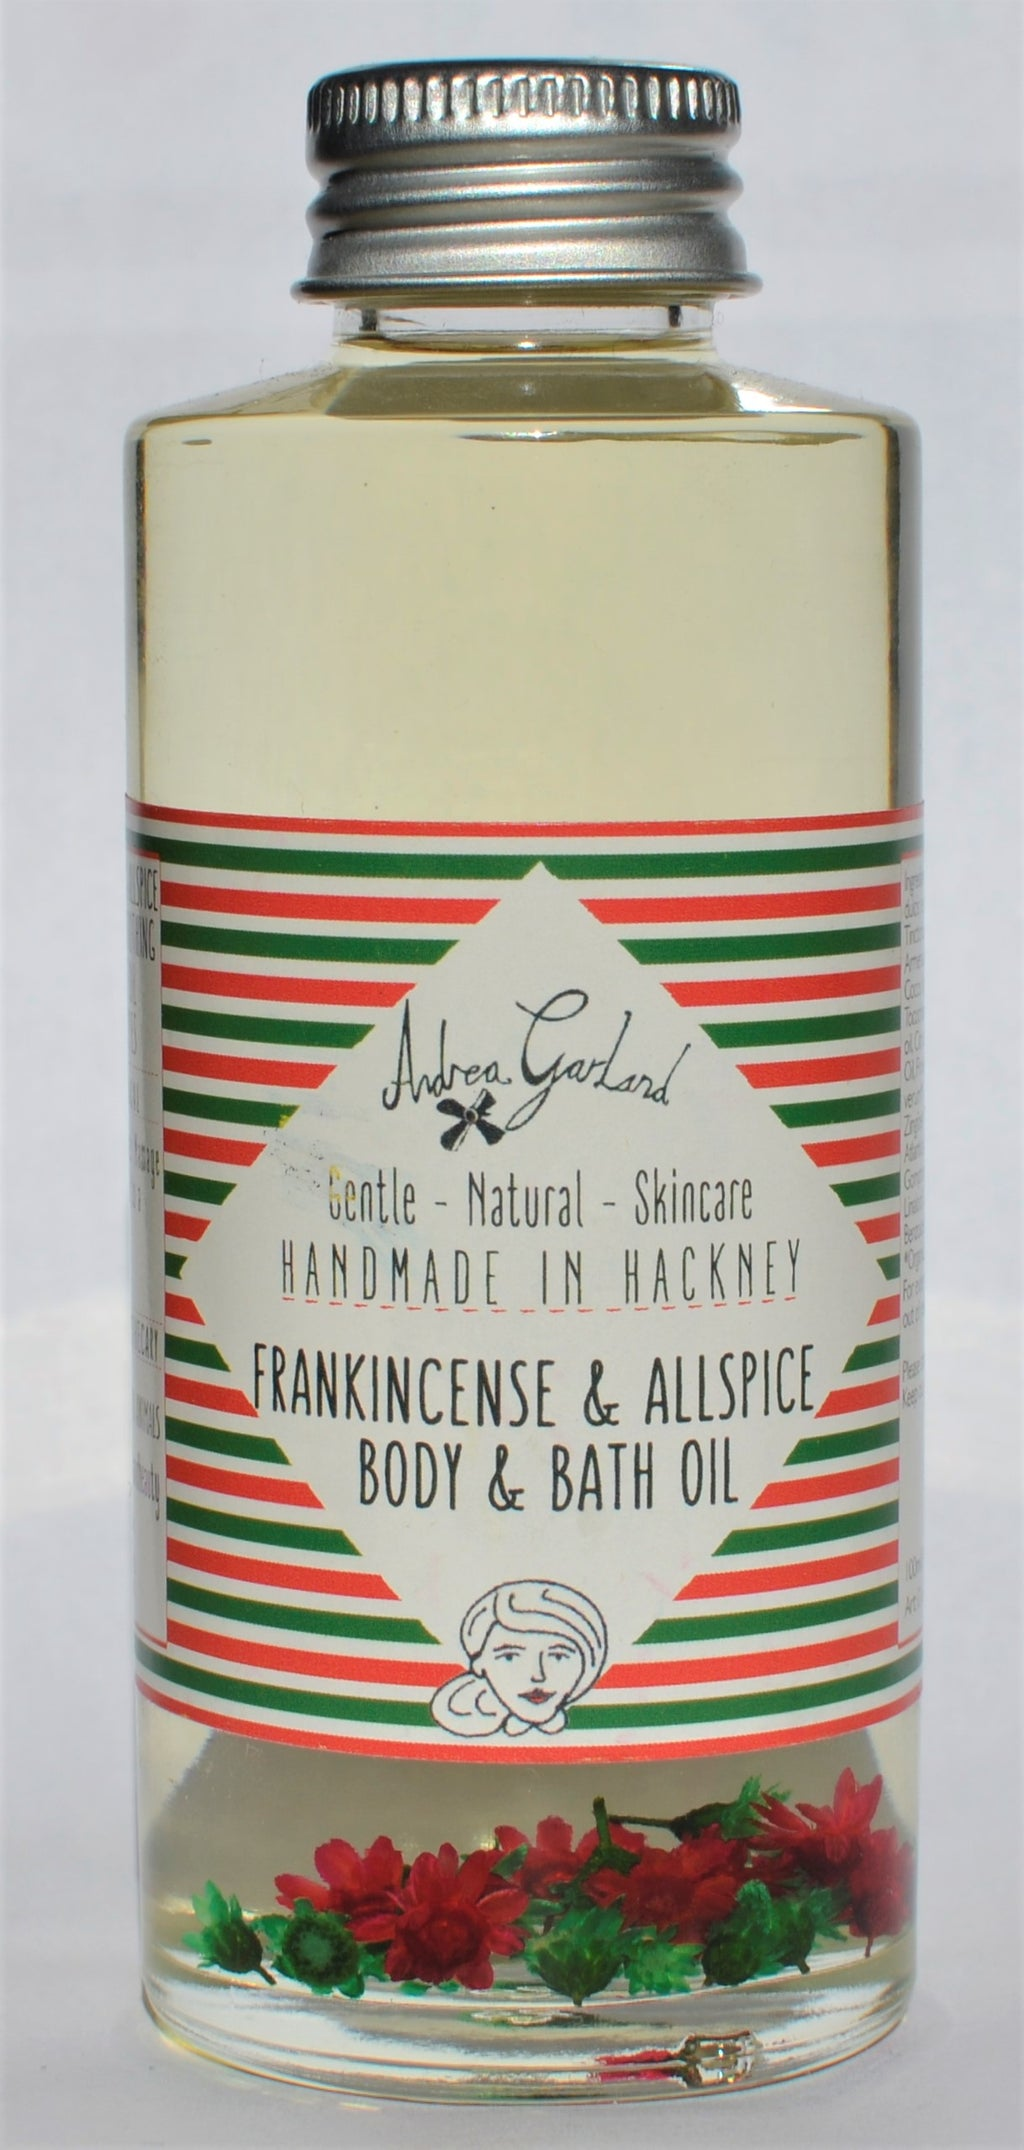 Andrea Garland - Frankincense and Allspice Body and Bath Oil